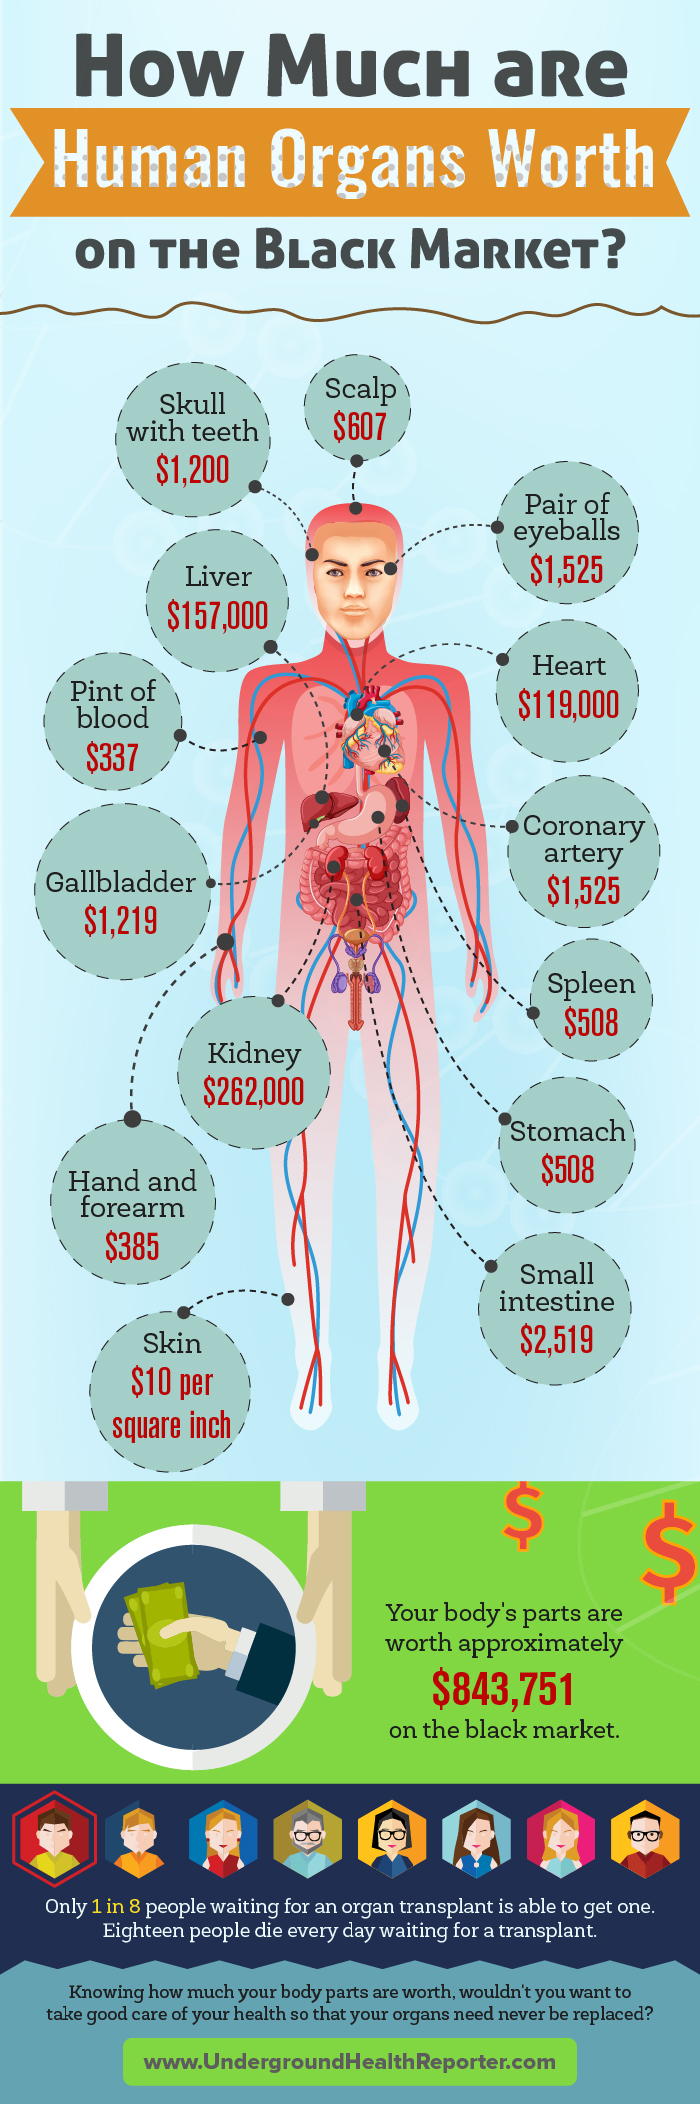 Infographic of the values of human organs on the black market